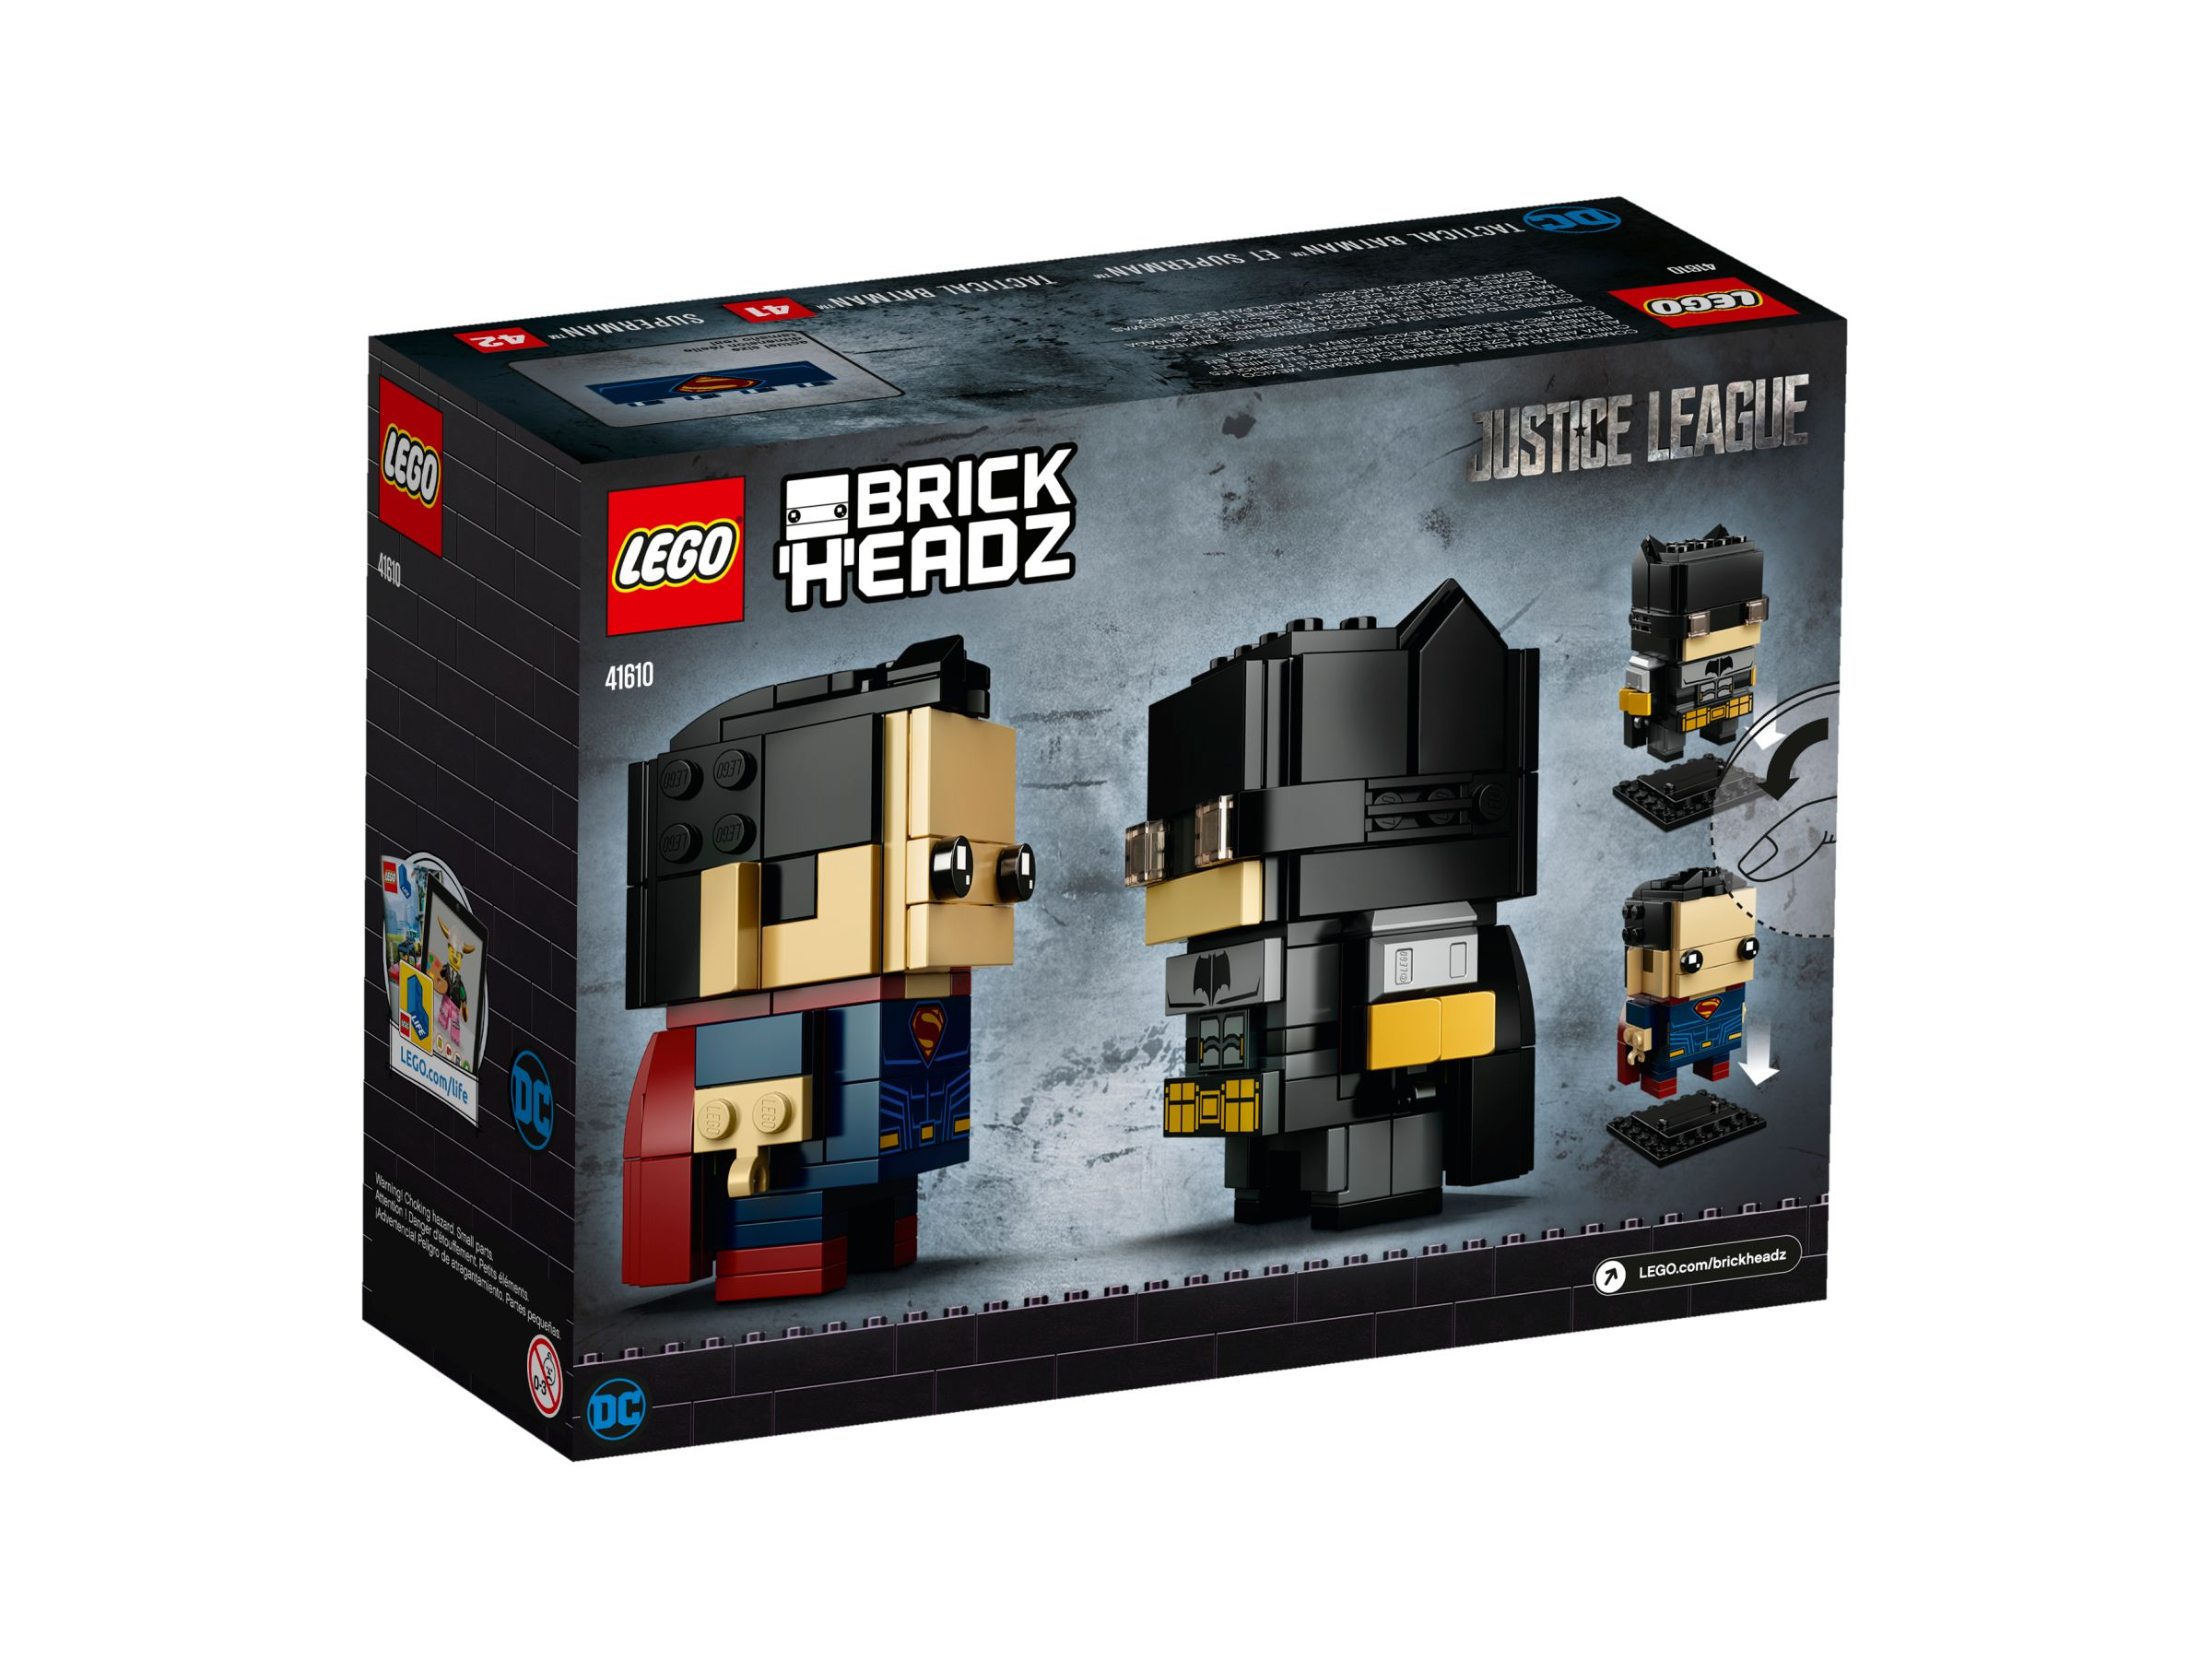 LEGO BrickHeadz 41610 Tactical Batman™ & Superman™ LEGO_41610_alt2.jpg